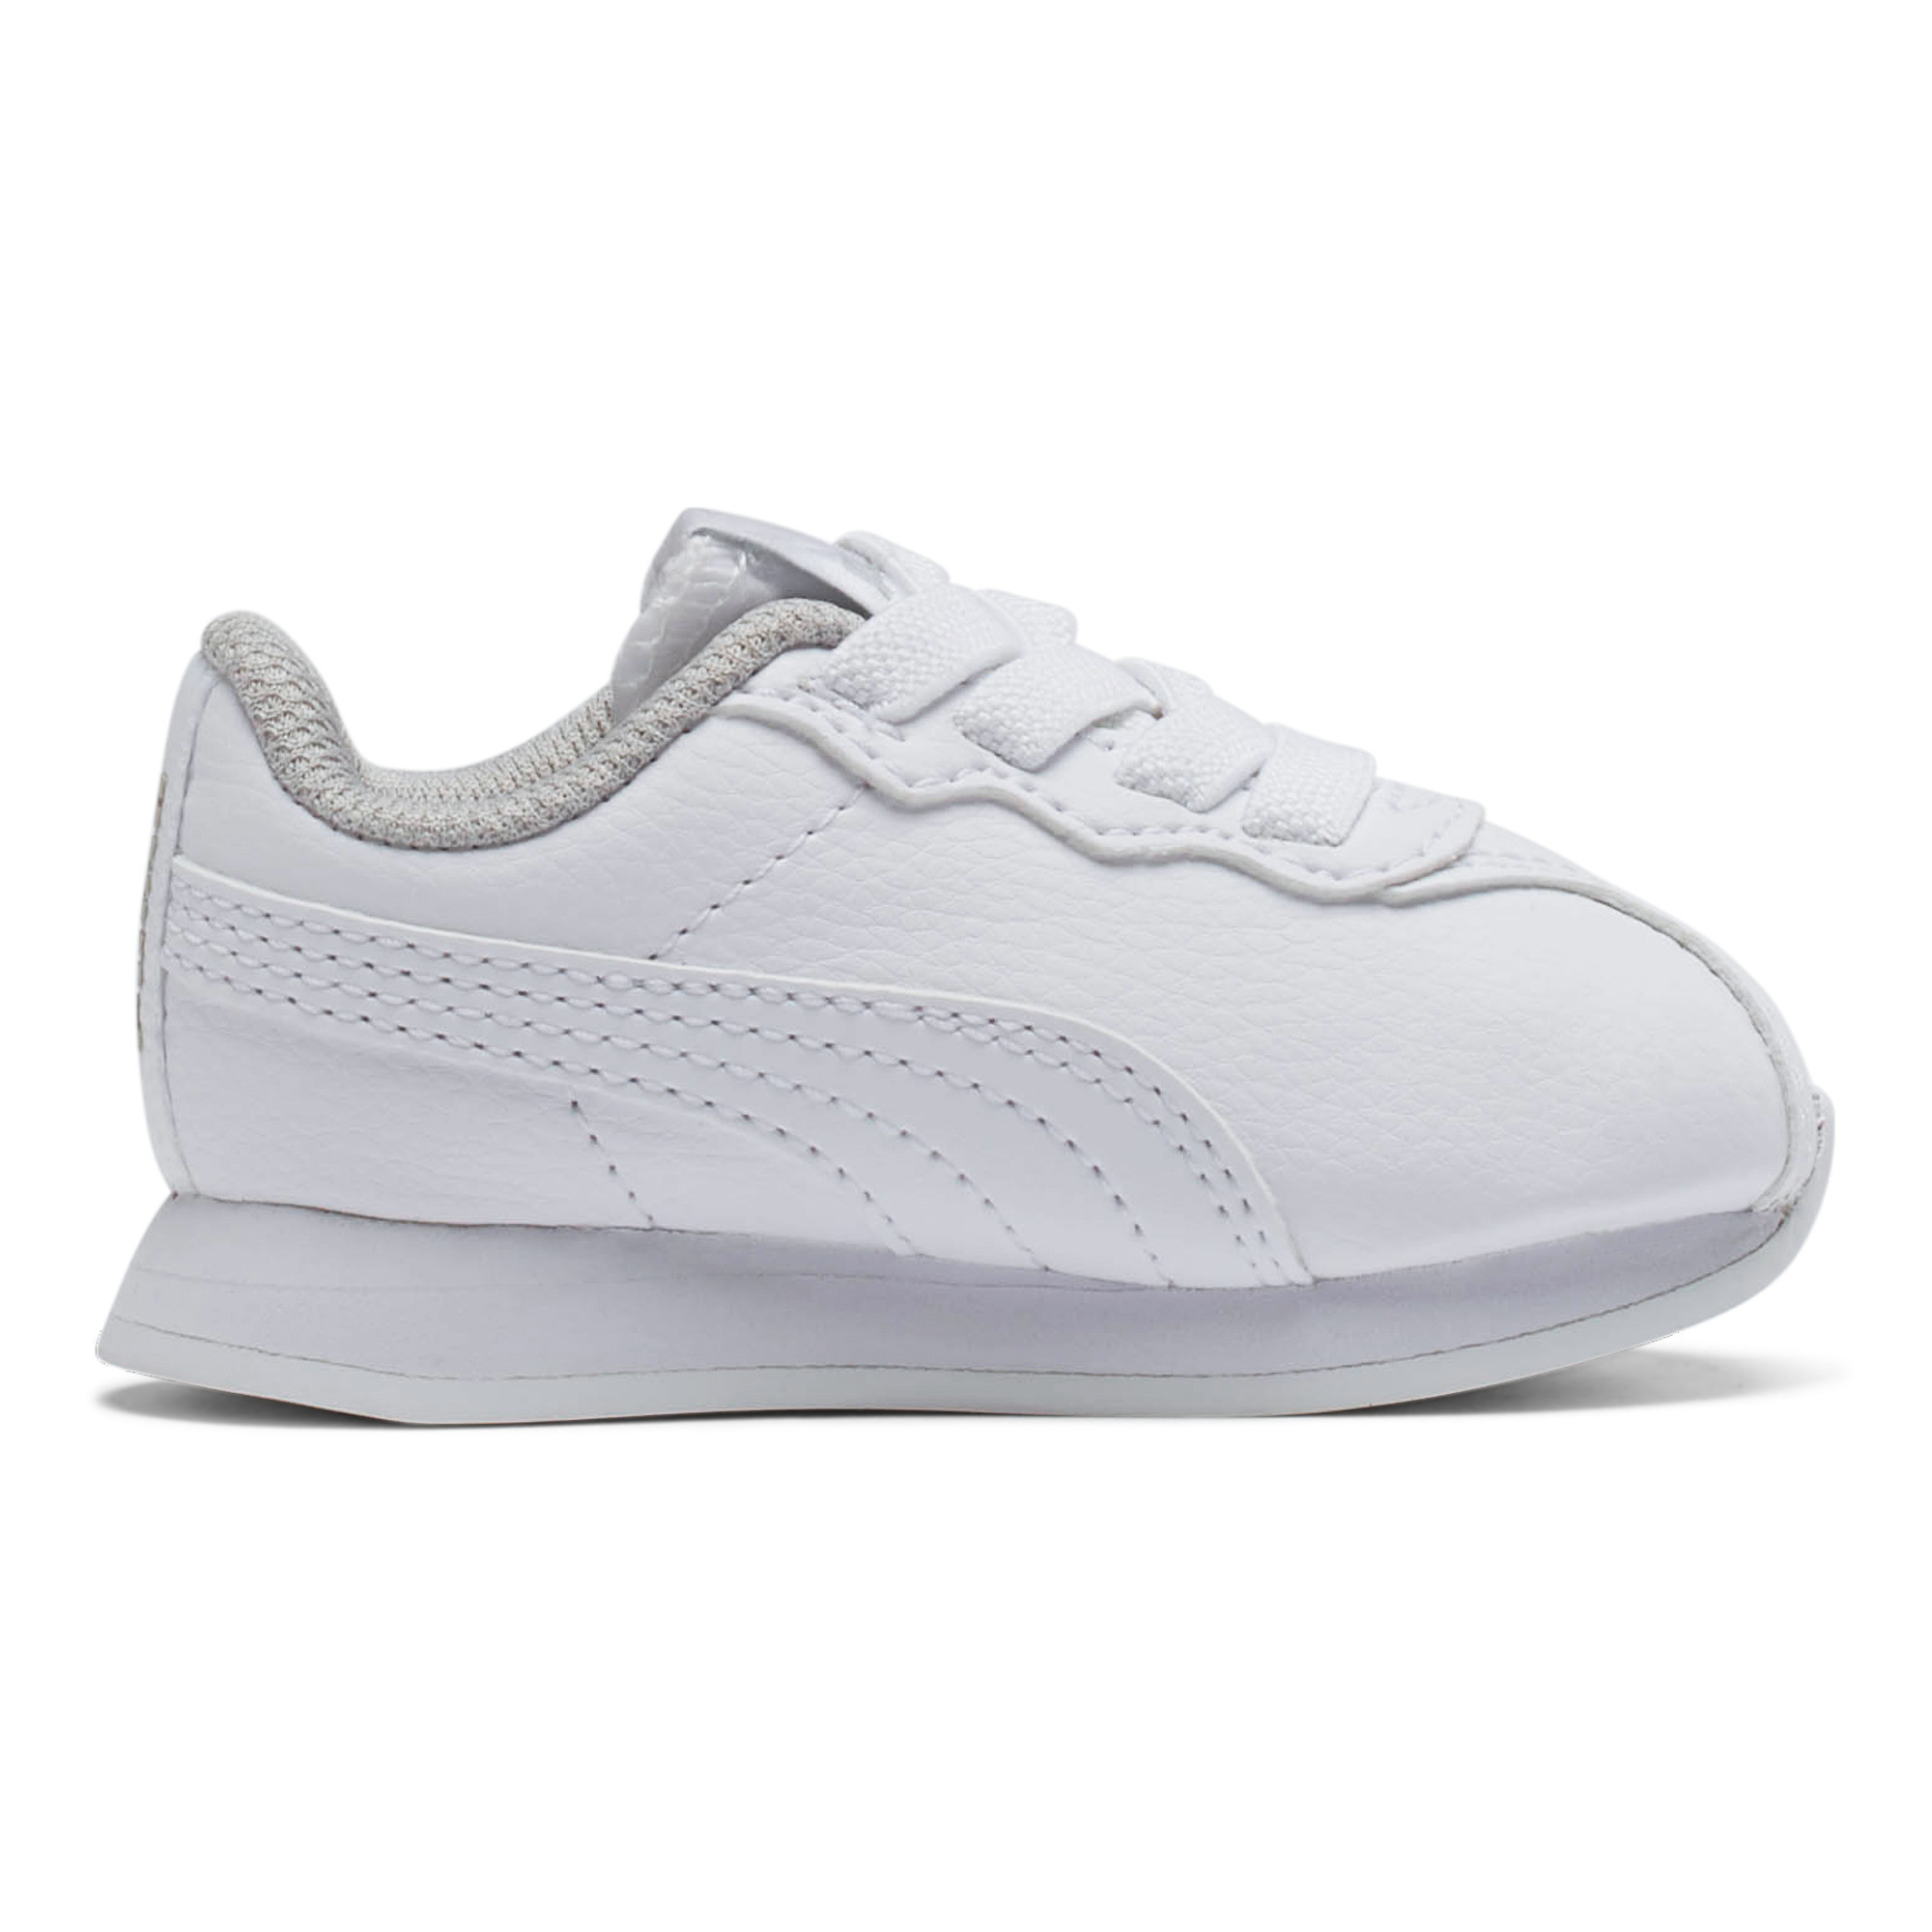 PUMA-Turin-II-AC-Toddler-Shoes-Kids-Shoe-Kids thumbnail 6